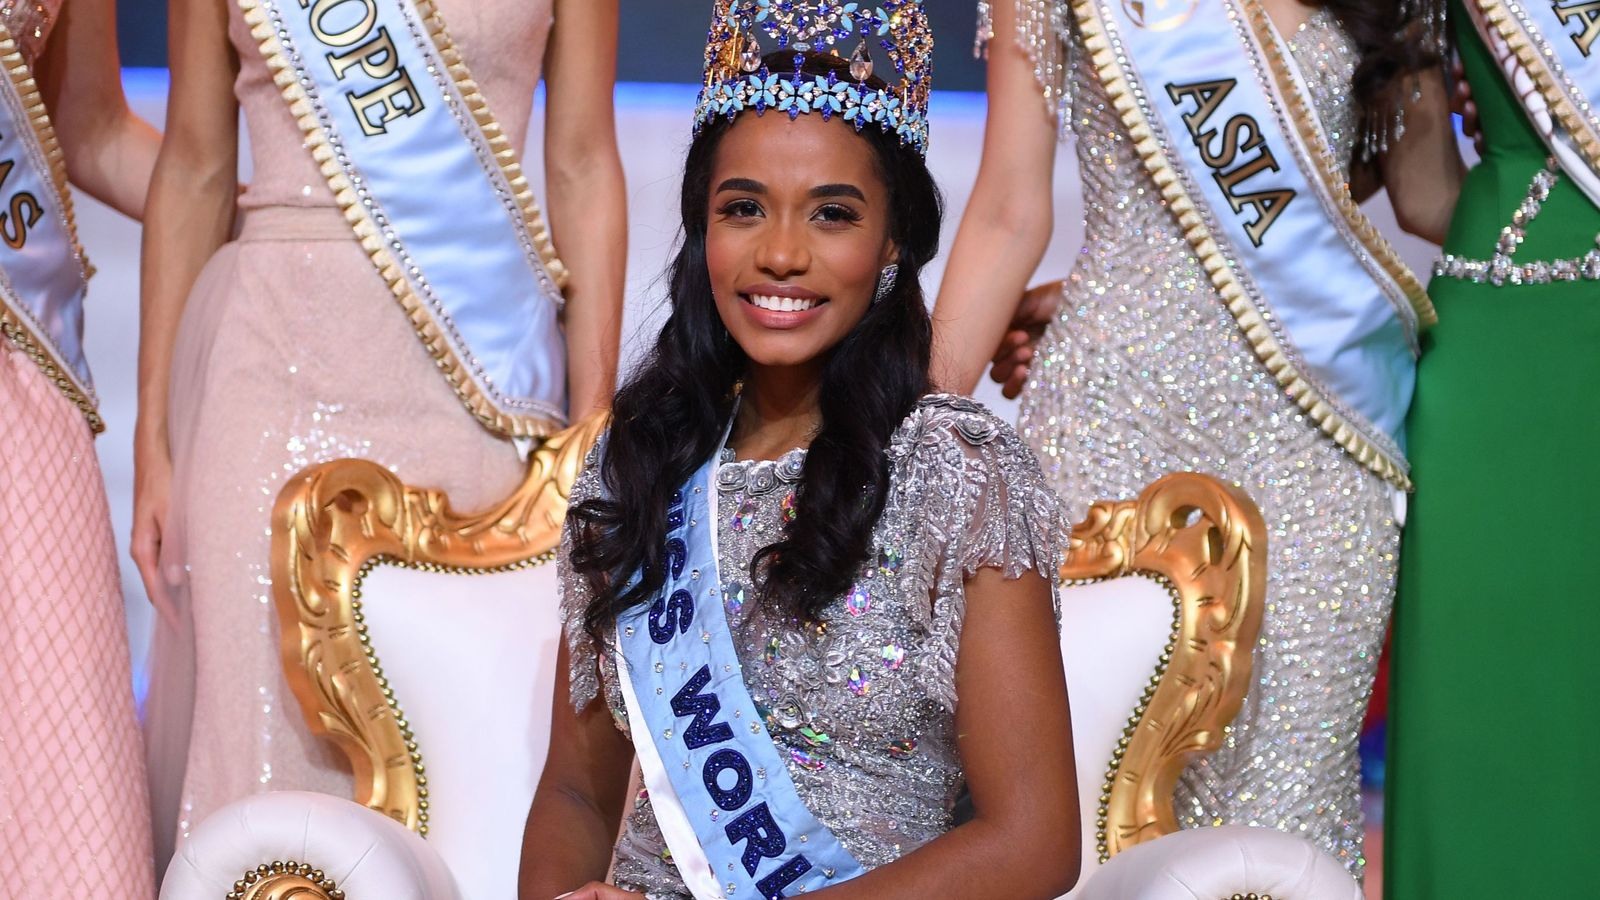 Jealous Insecure Overweight Feminists Attempt To Shut Down Miss World Competition